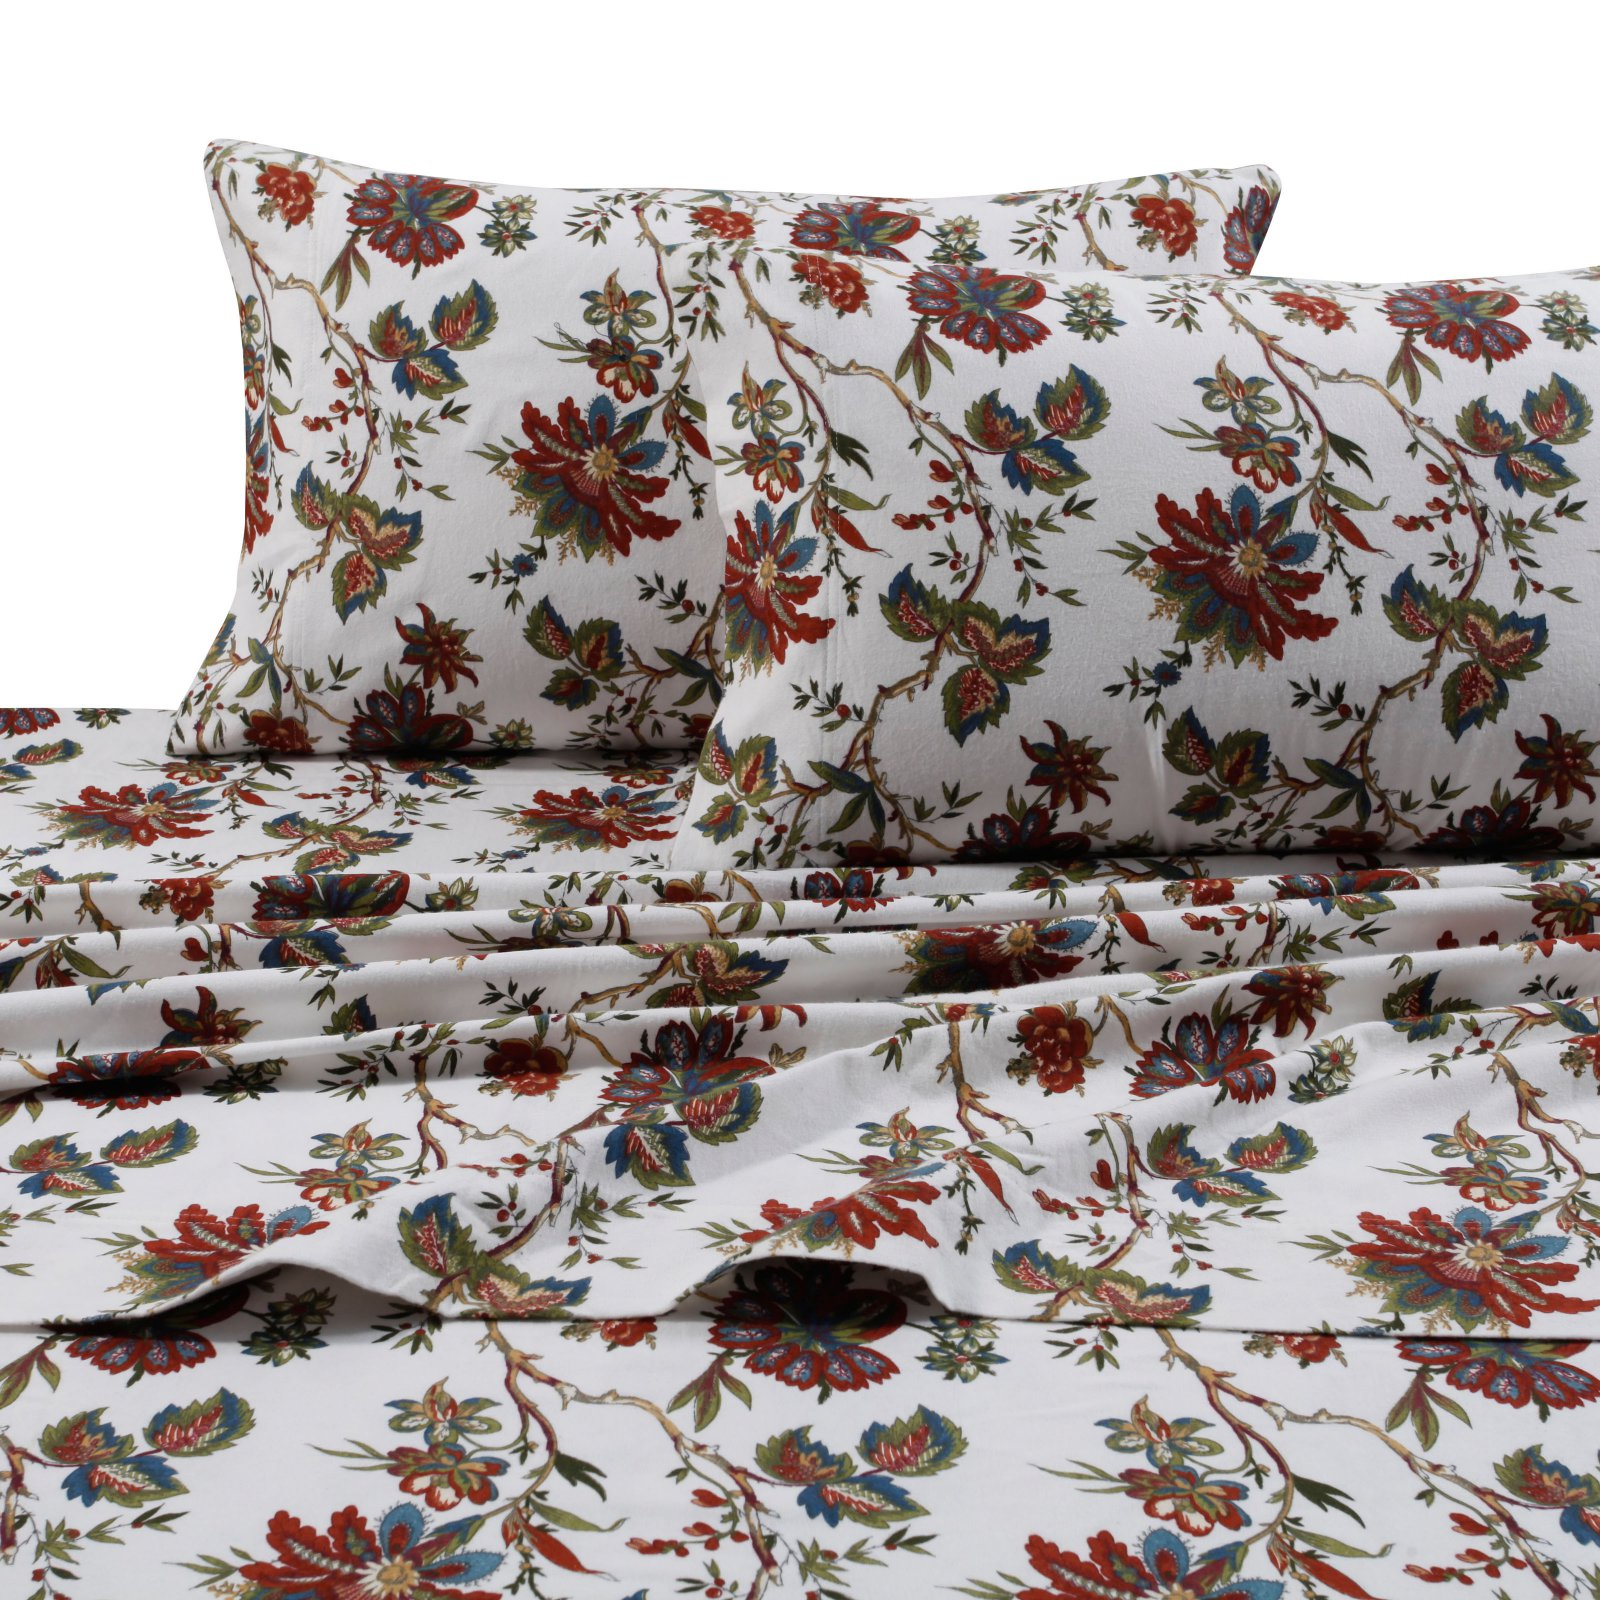 Printed Flannel 4 Piece Sheet Set by Tribeca Living - Rainforest